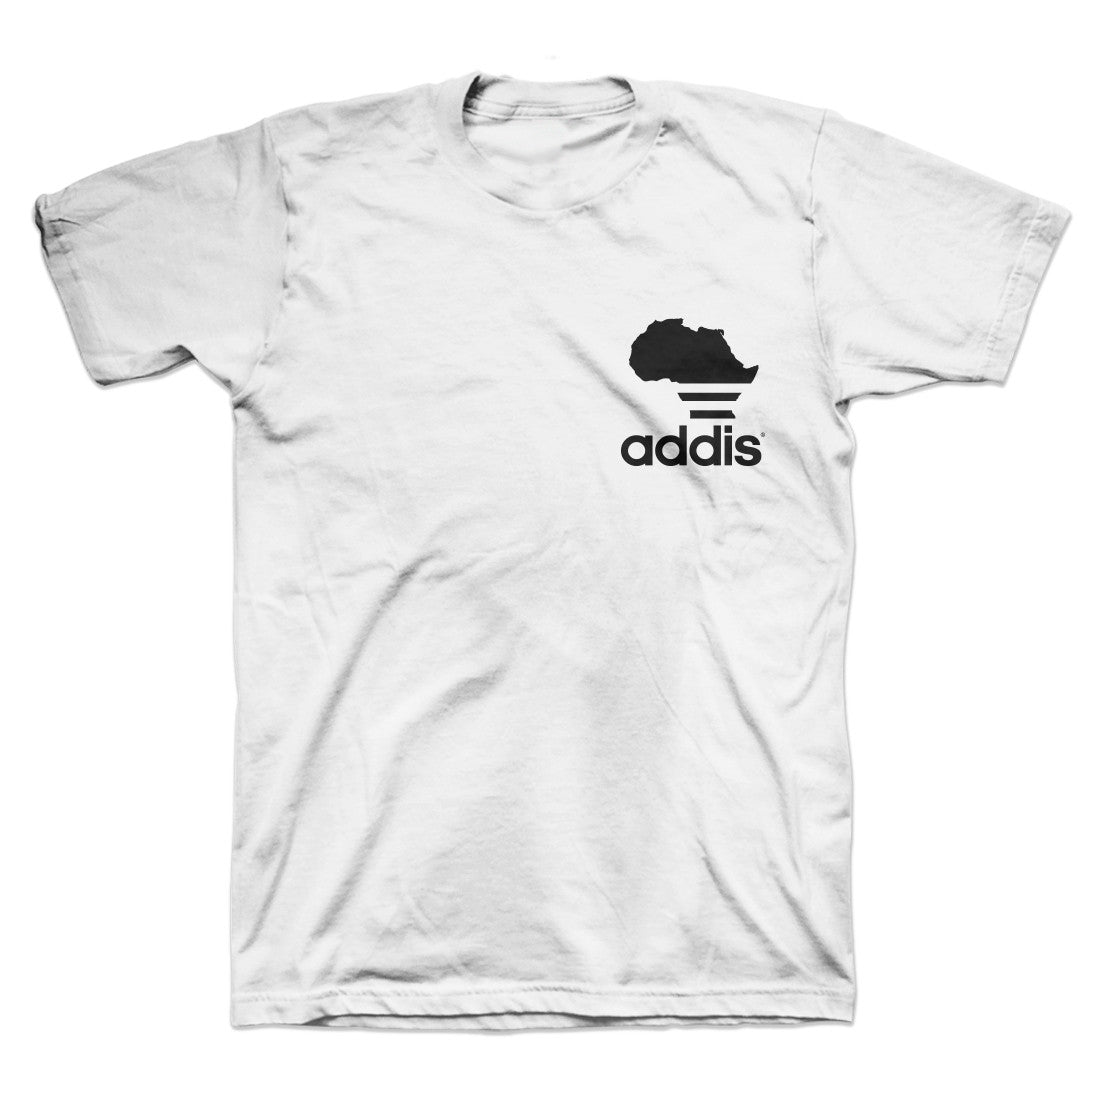 addis T-Shirt White